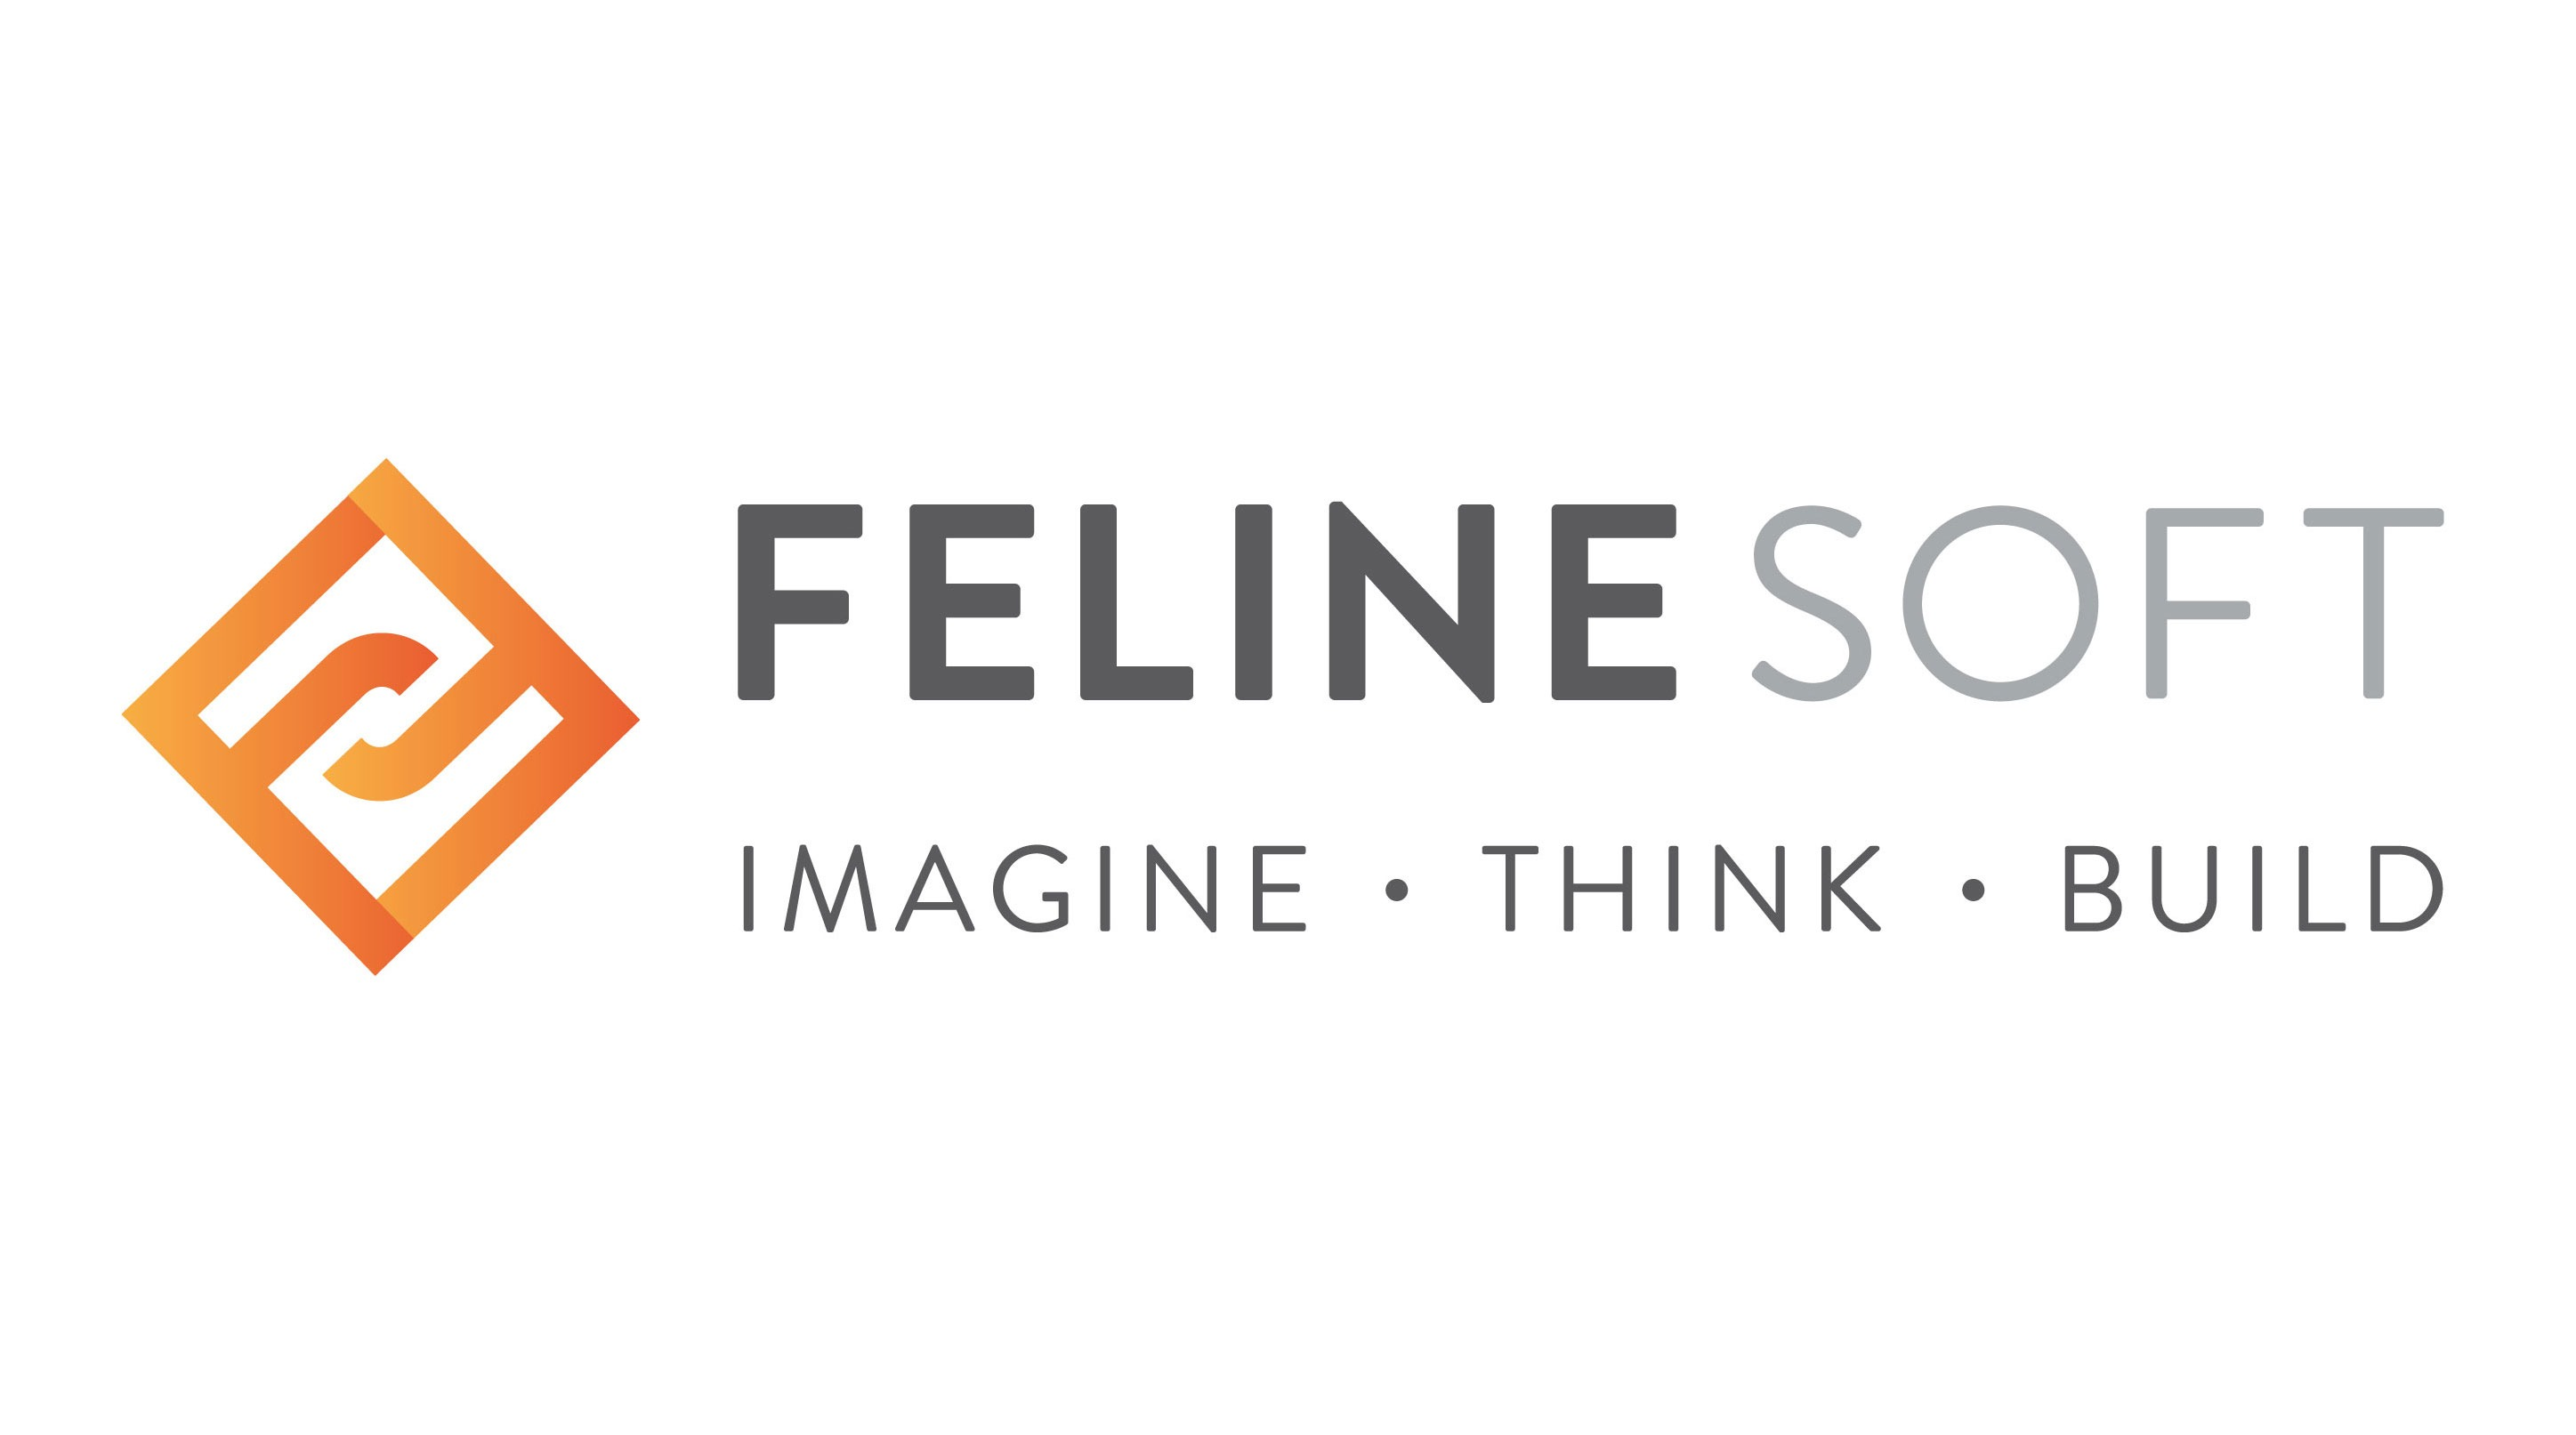 Felinesoft new corporate identity